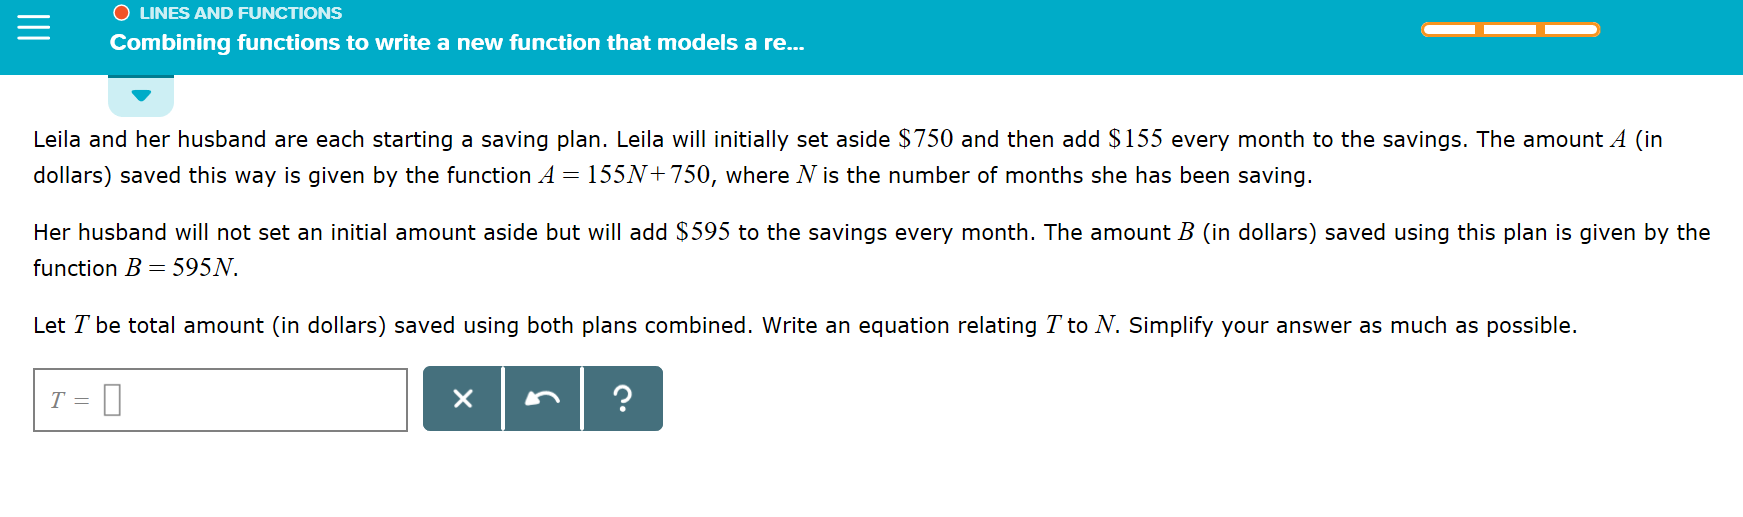 O LINES AND FUNCTIONS Combining functions to write a new function that models a re... Leila and her husband are each starting a saving plan. Leila will initially set aside $750 and then add $155 every month to the savings. The amount A (in dollars) saved this way is given by the function A = 155N+750, where N is the number of months she has been saving. Her husband will not set an initial amount aside but will add $595 to the savings every month. The amount B (in dollars) saved using this plan is given by the function B 595N Let T be total amount (in dollars) saved using both plans combined. Write an equation relating T to N. Simplify your answer as much as possible. X T =